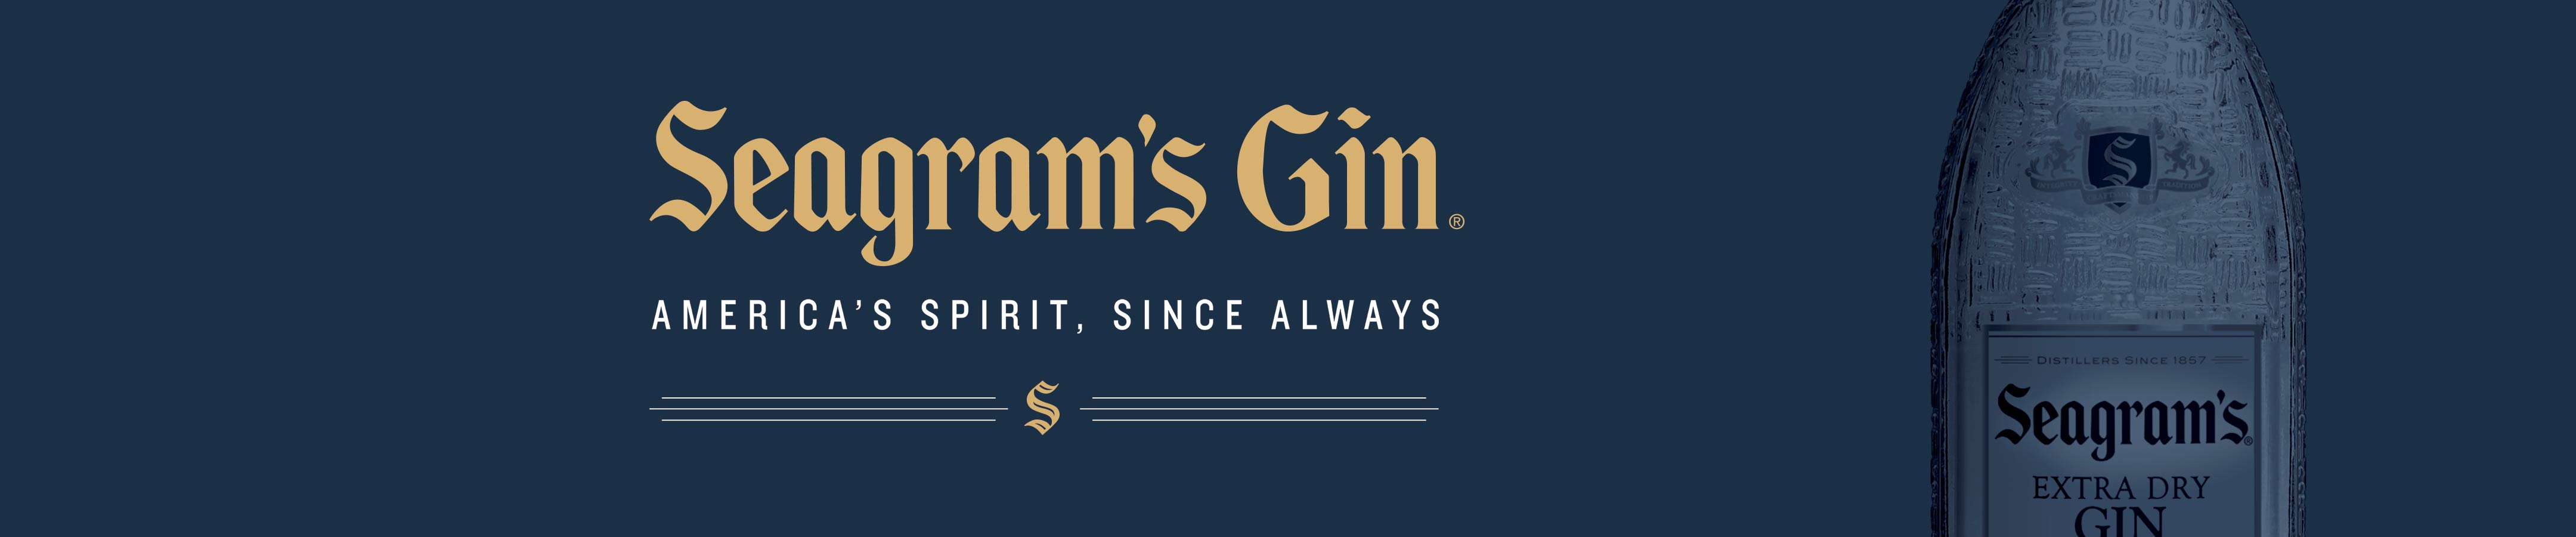 Buy Seagram's Gin online now from your nearby liquor store via Minibar Delivery.